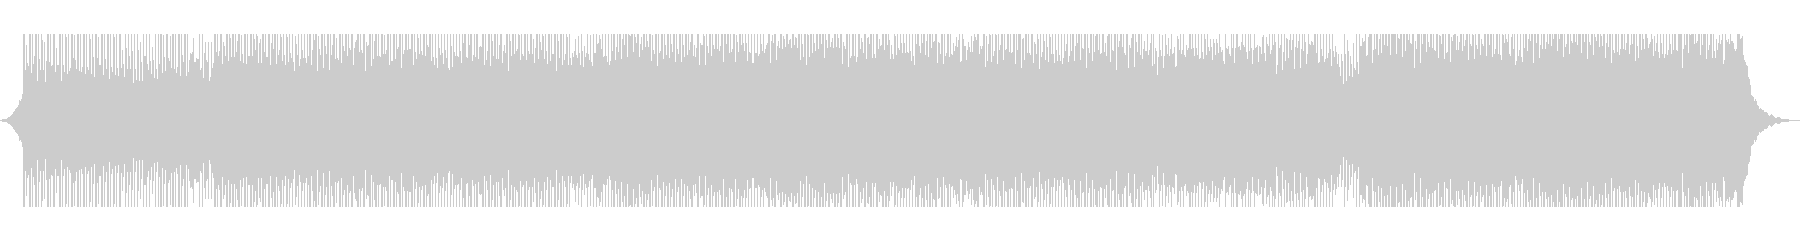 Startup Company's unreproduced waveform